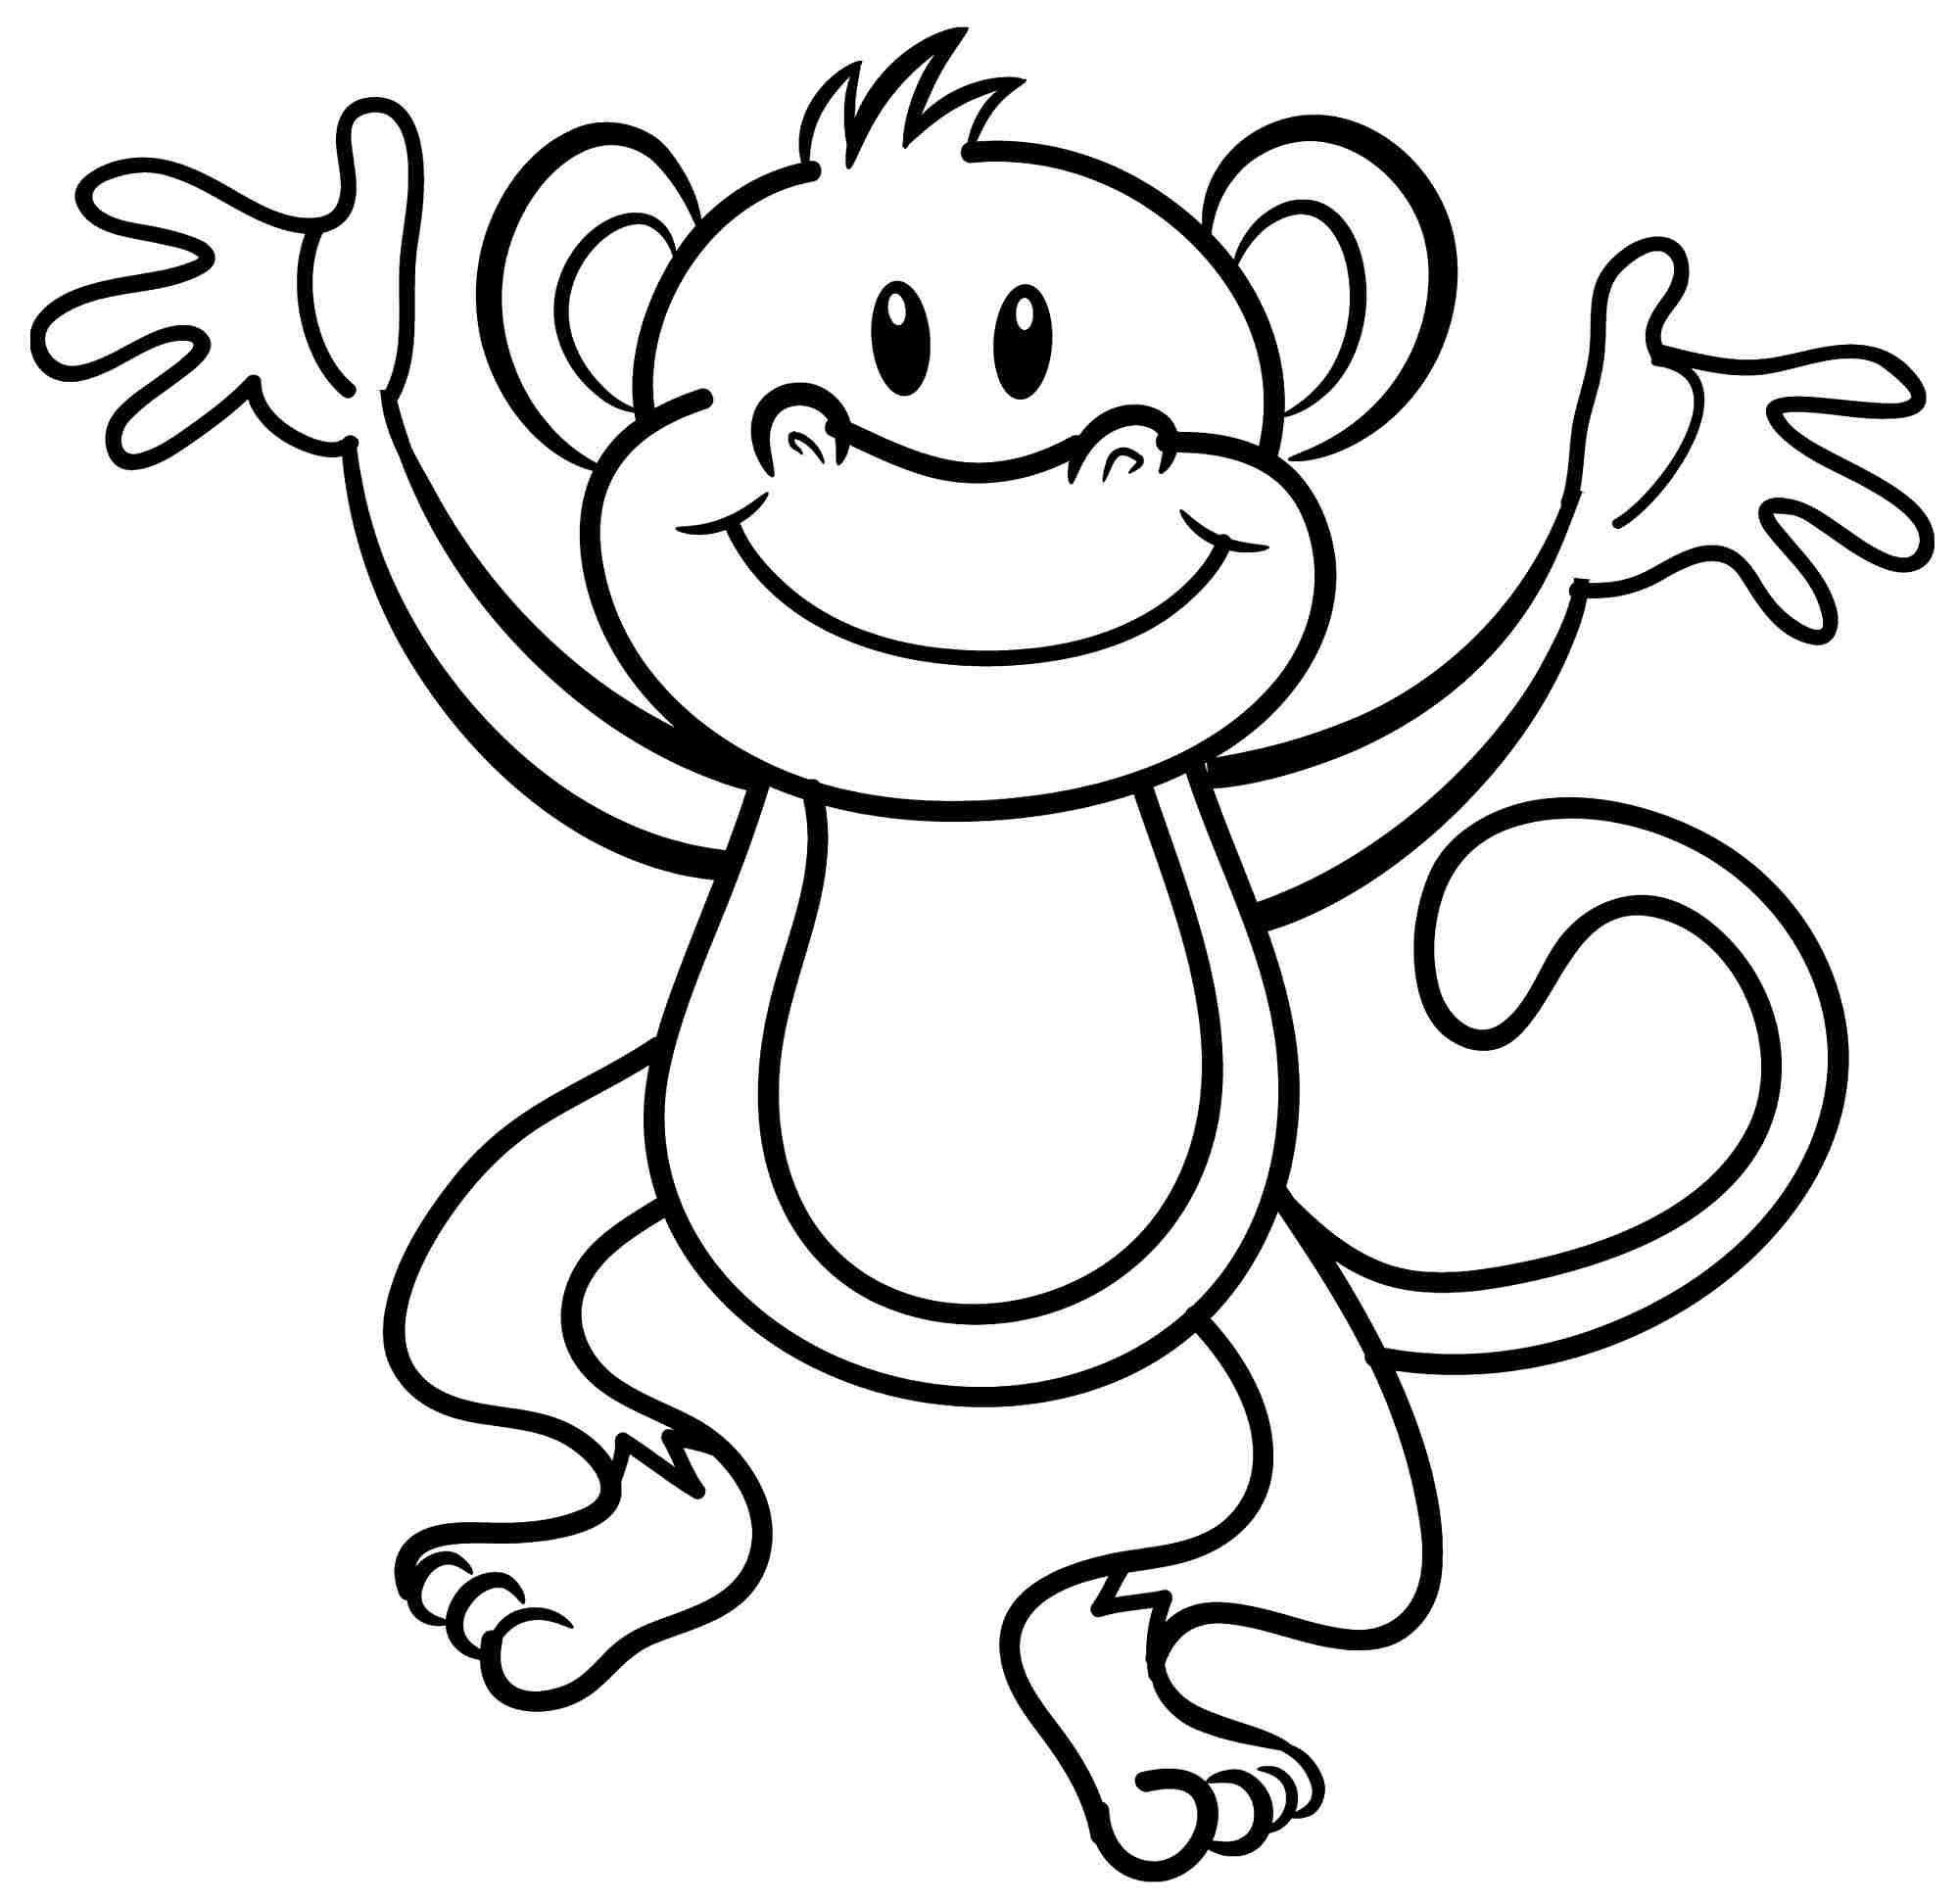 Free Coloring Pages Animals Image